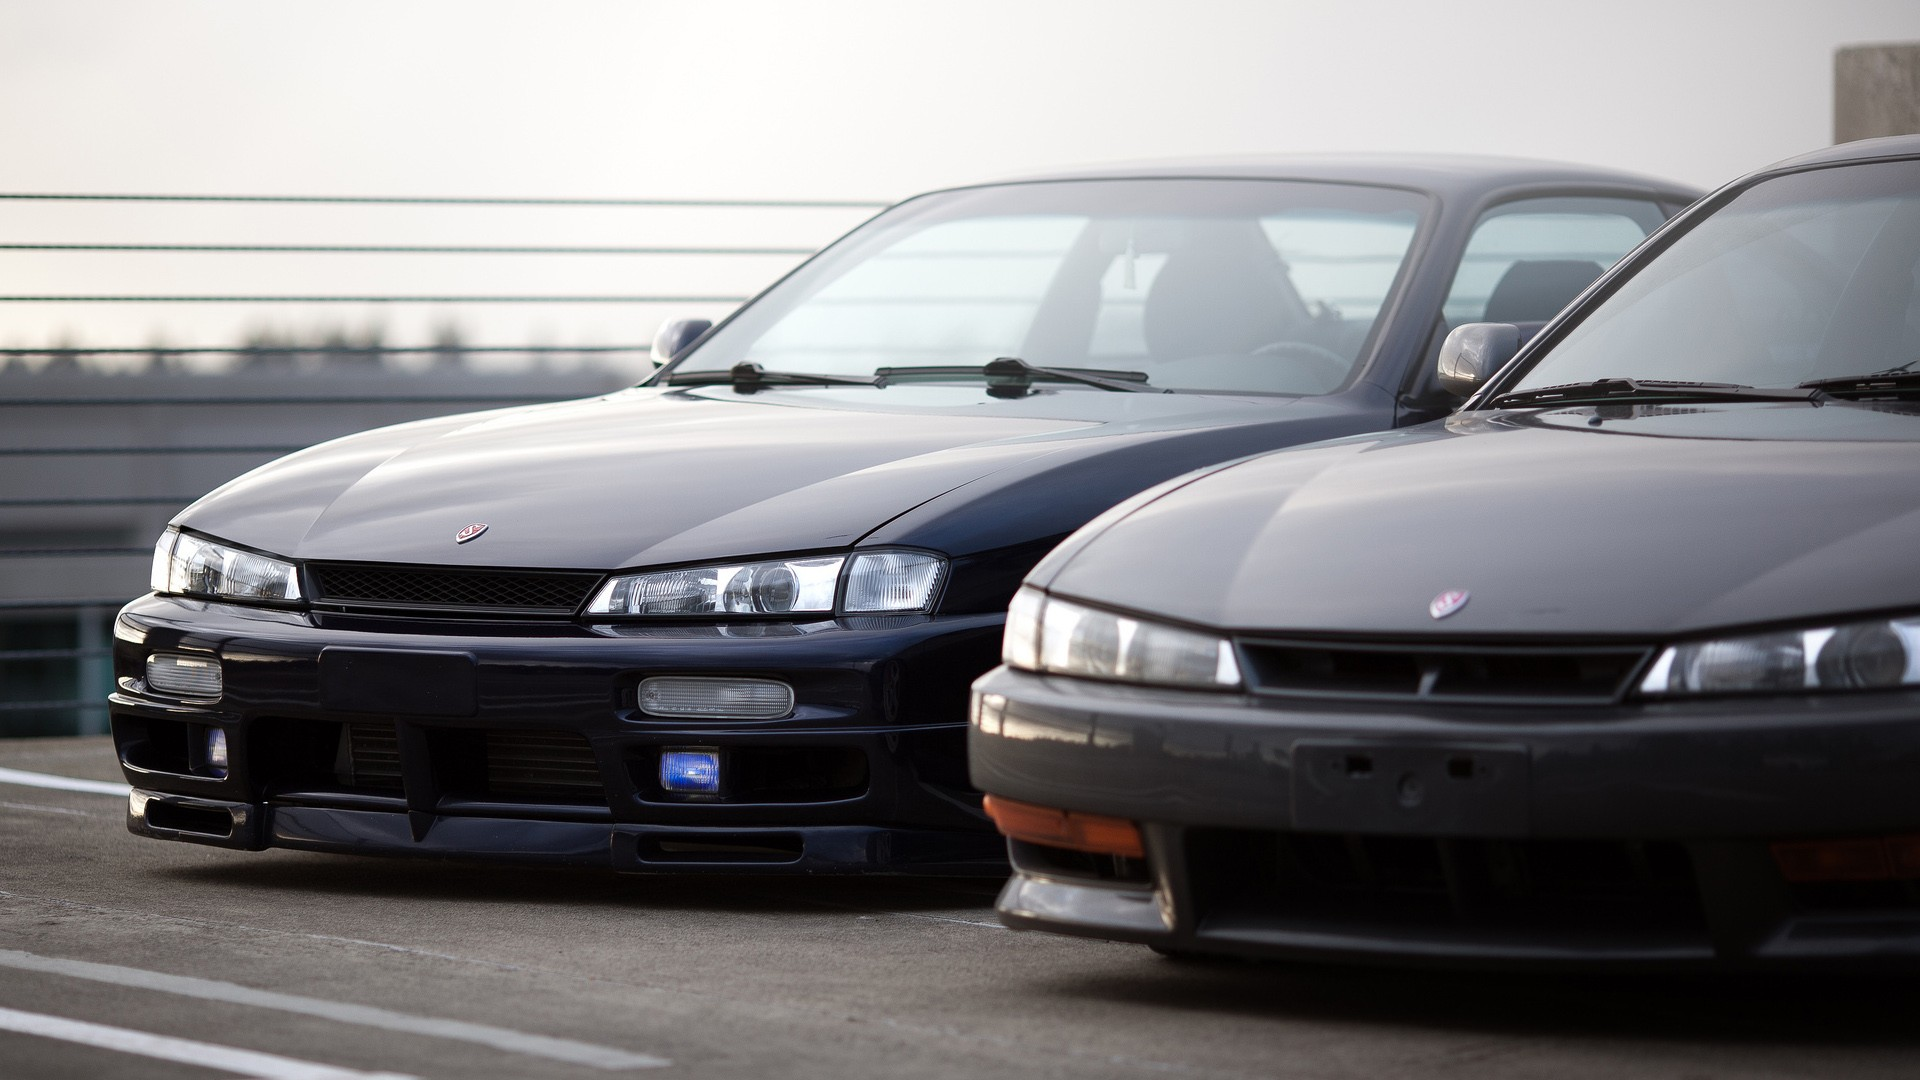 Black Car Wallpaper Mobile Nissan Silvia S14 Kouki Car Jdm Tuning Wallpapers Hd